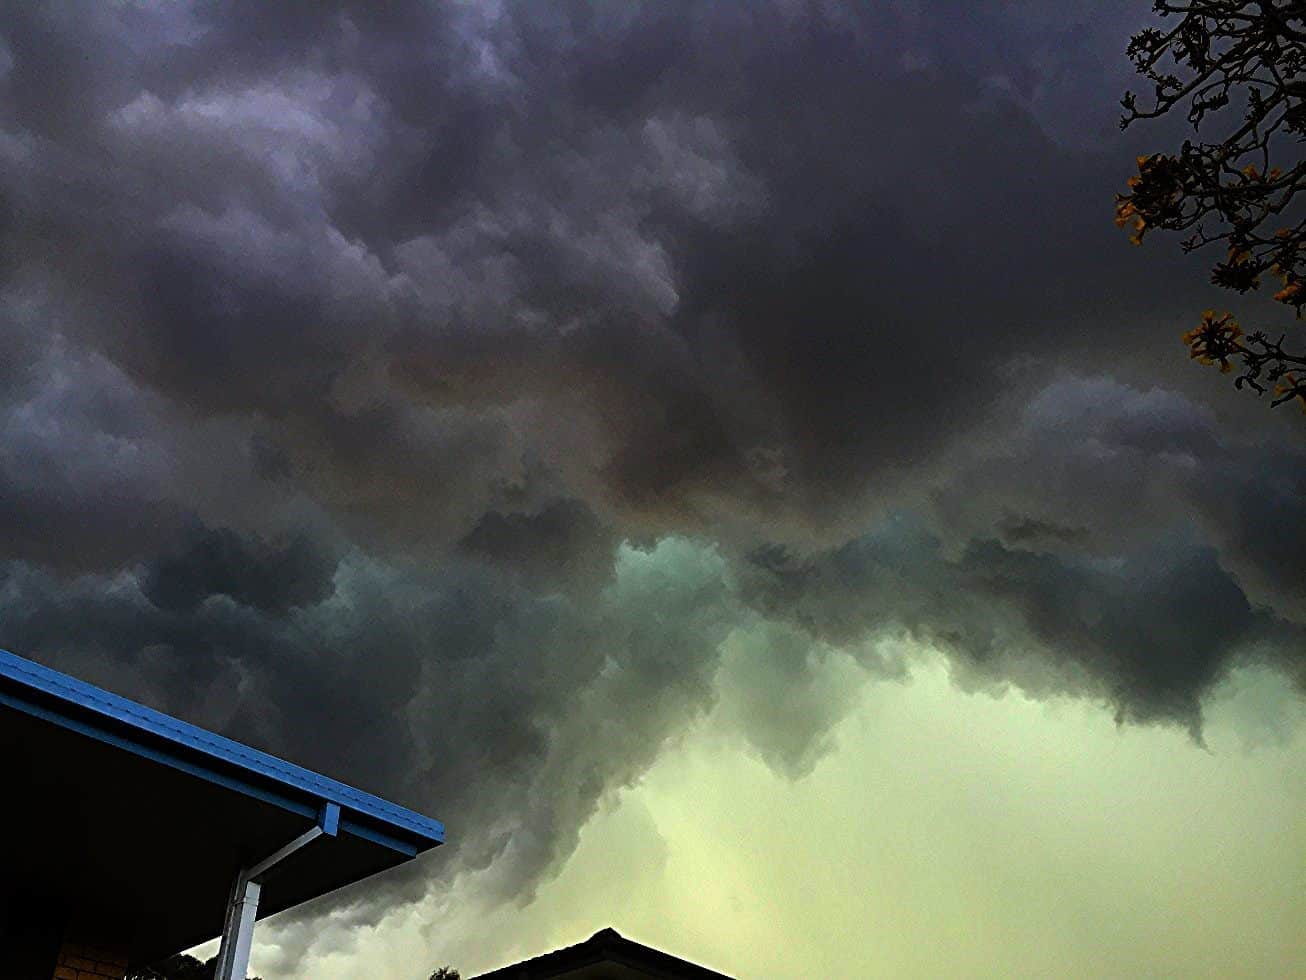 Greenage under the base of a shelf cloud of an approaching thunderstorm. Brisbane, Australia - Sep 29th 2015: